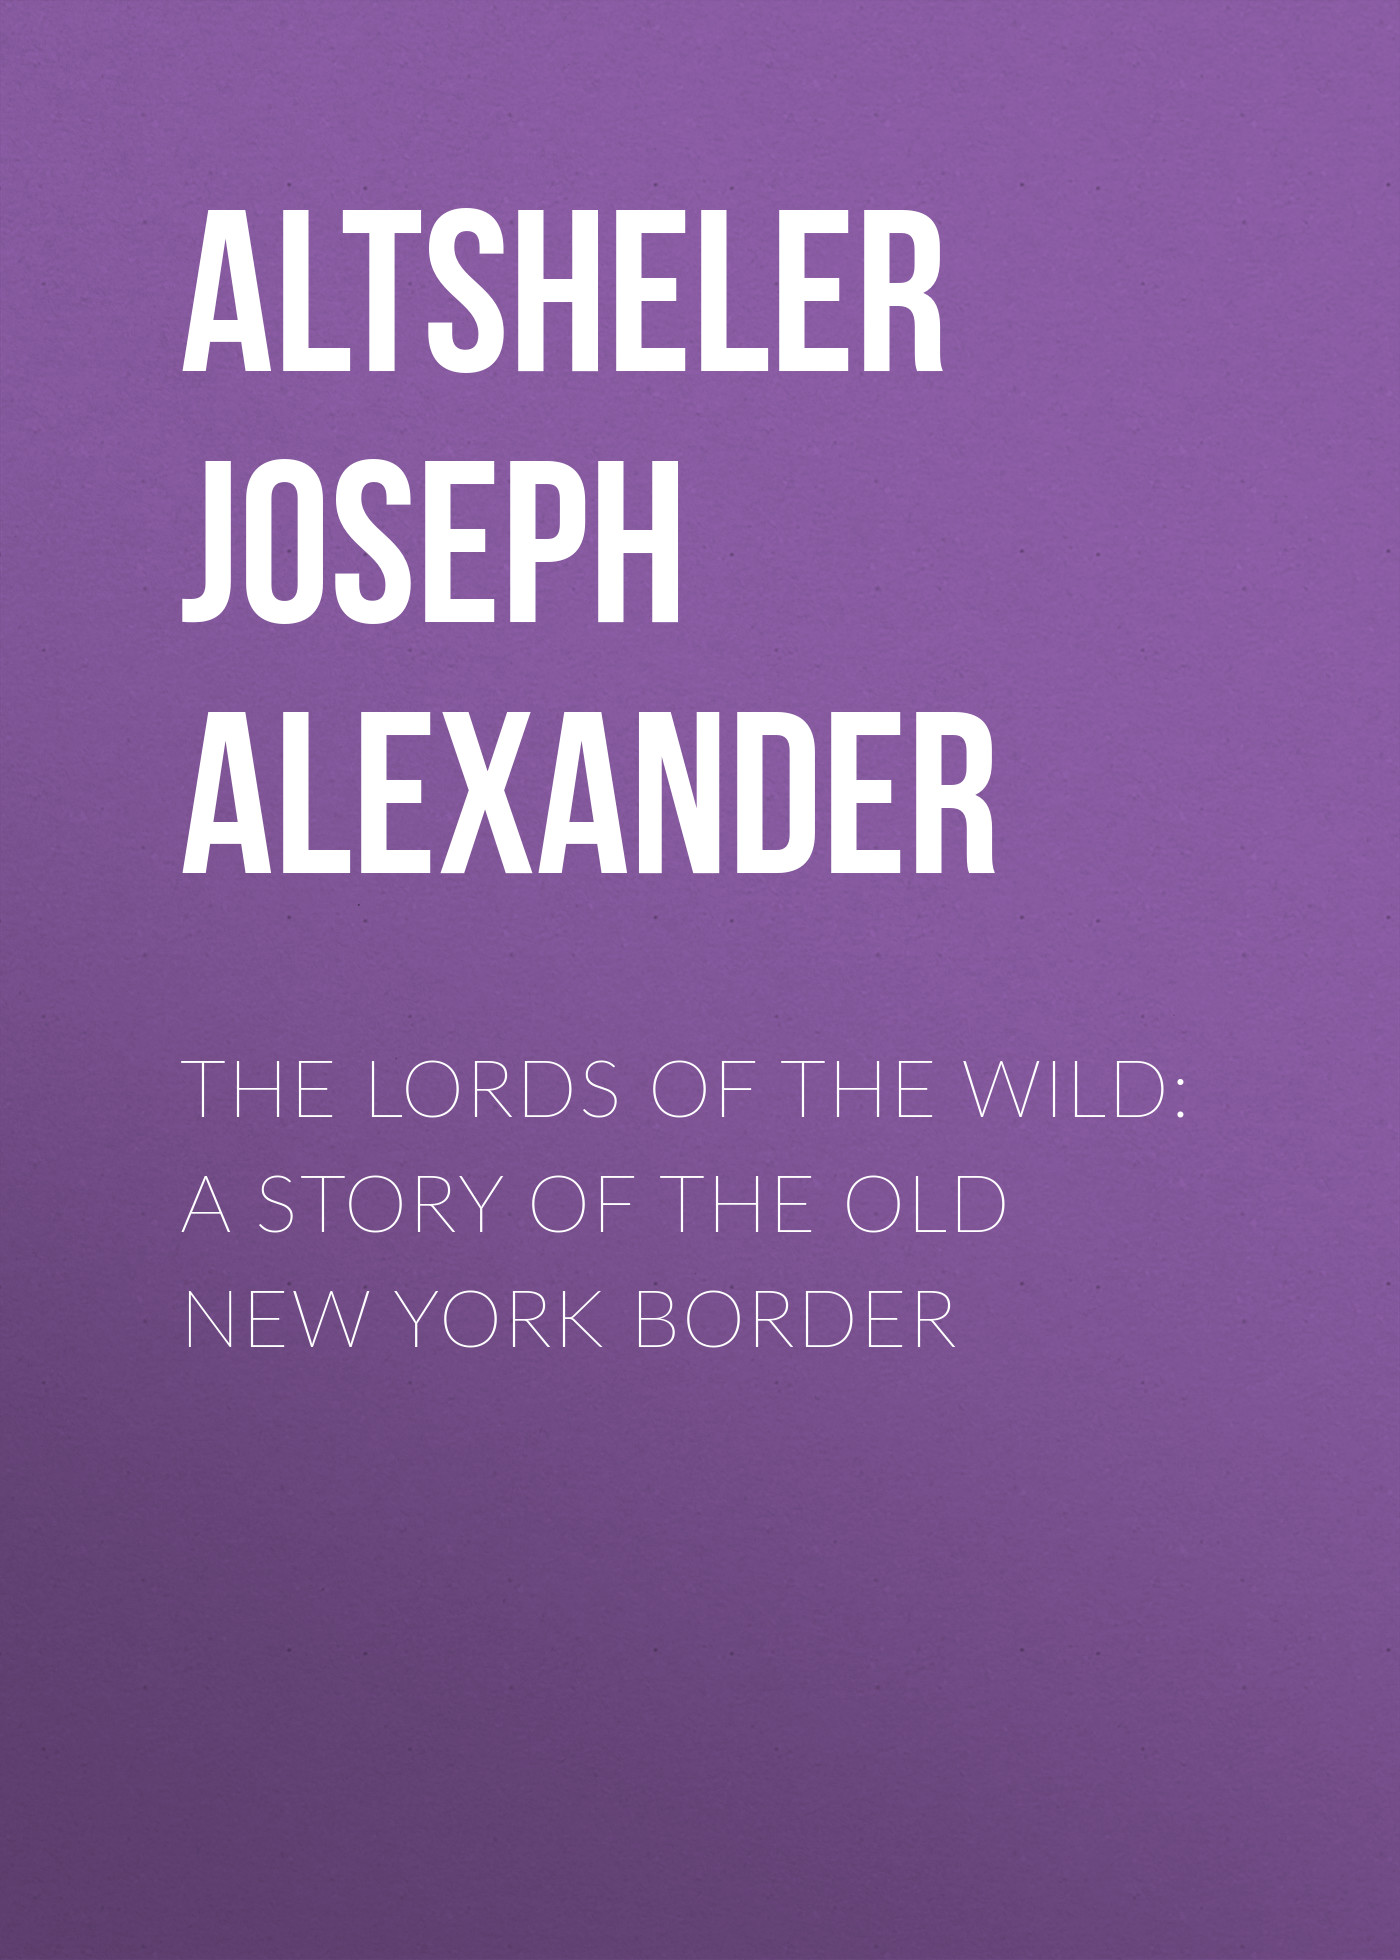 Фото - Altsheler Joseph Alexander The Lords of the Wild: A Story of the Old New York Border field martha reinhard smallw 1855 1898 the story of the old french market new orleans